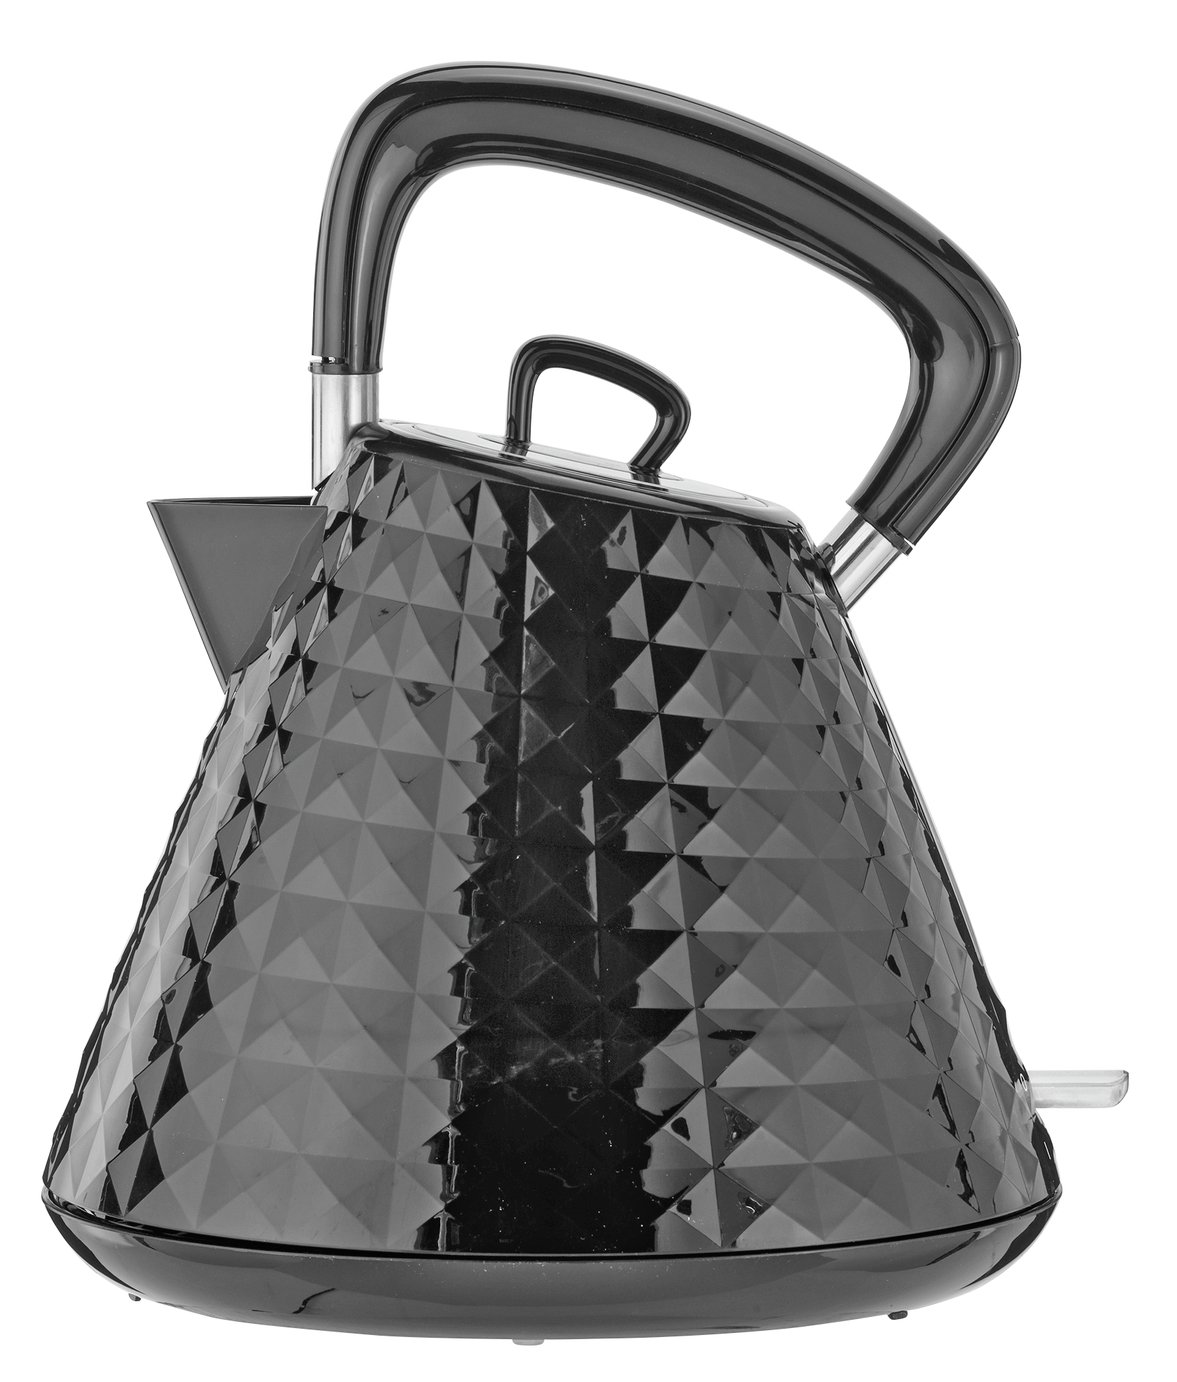 Cookworks Textured Kettle - Black